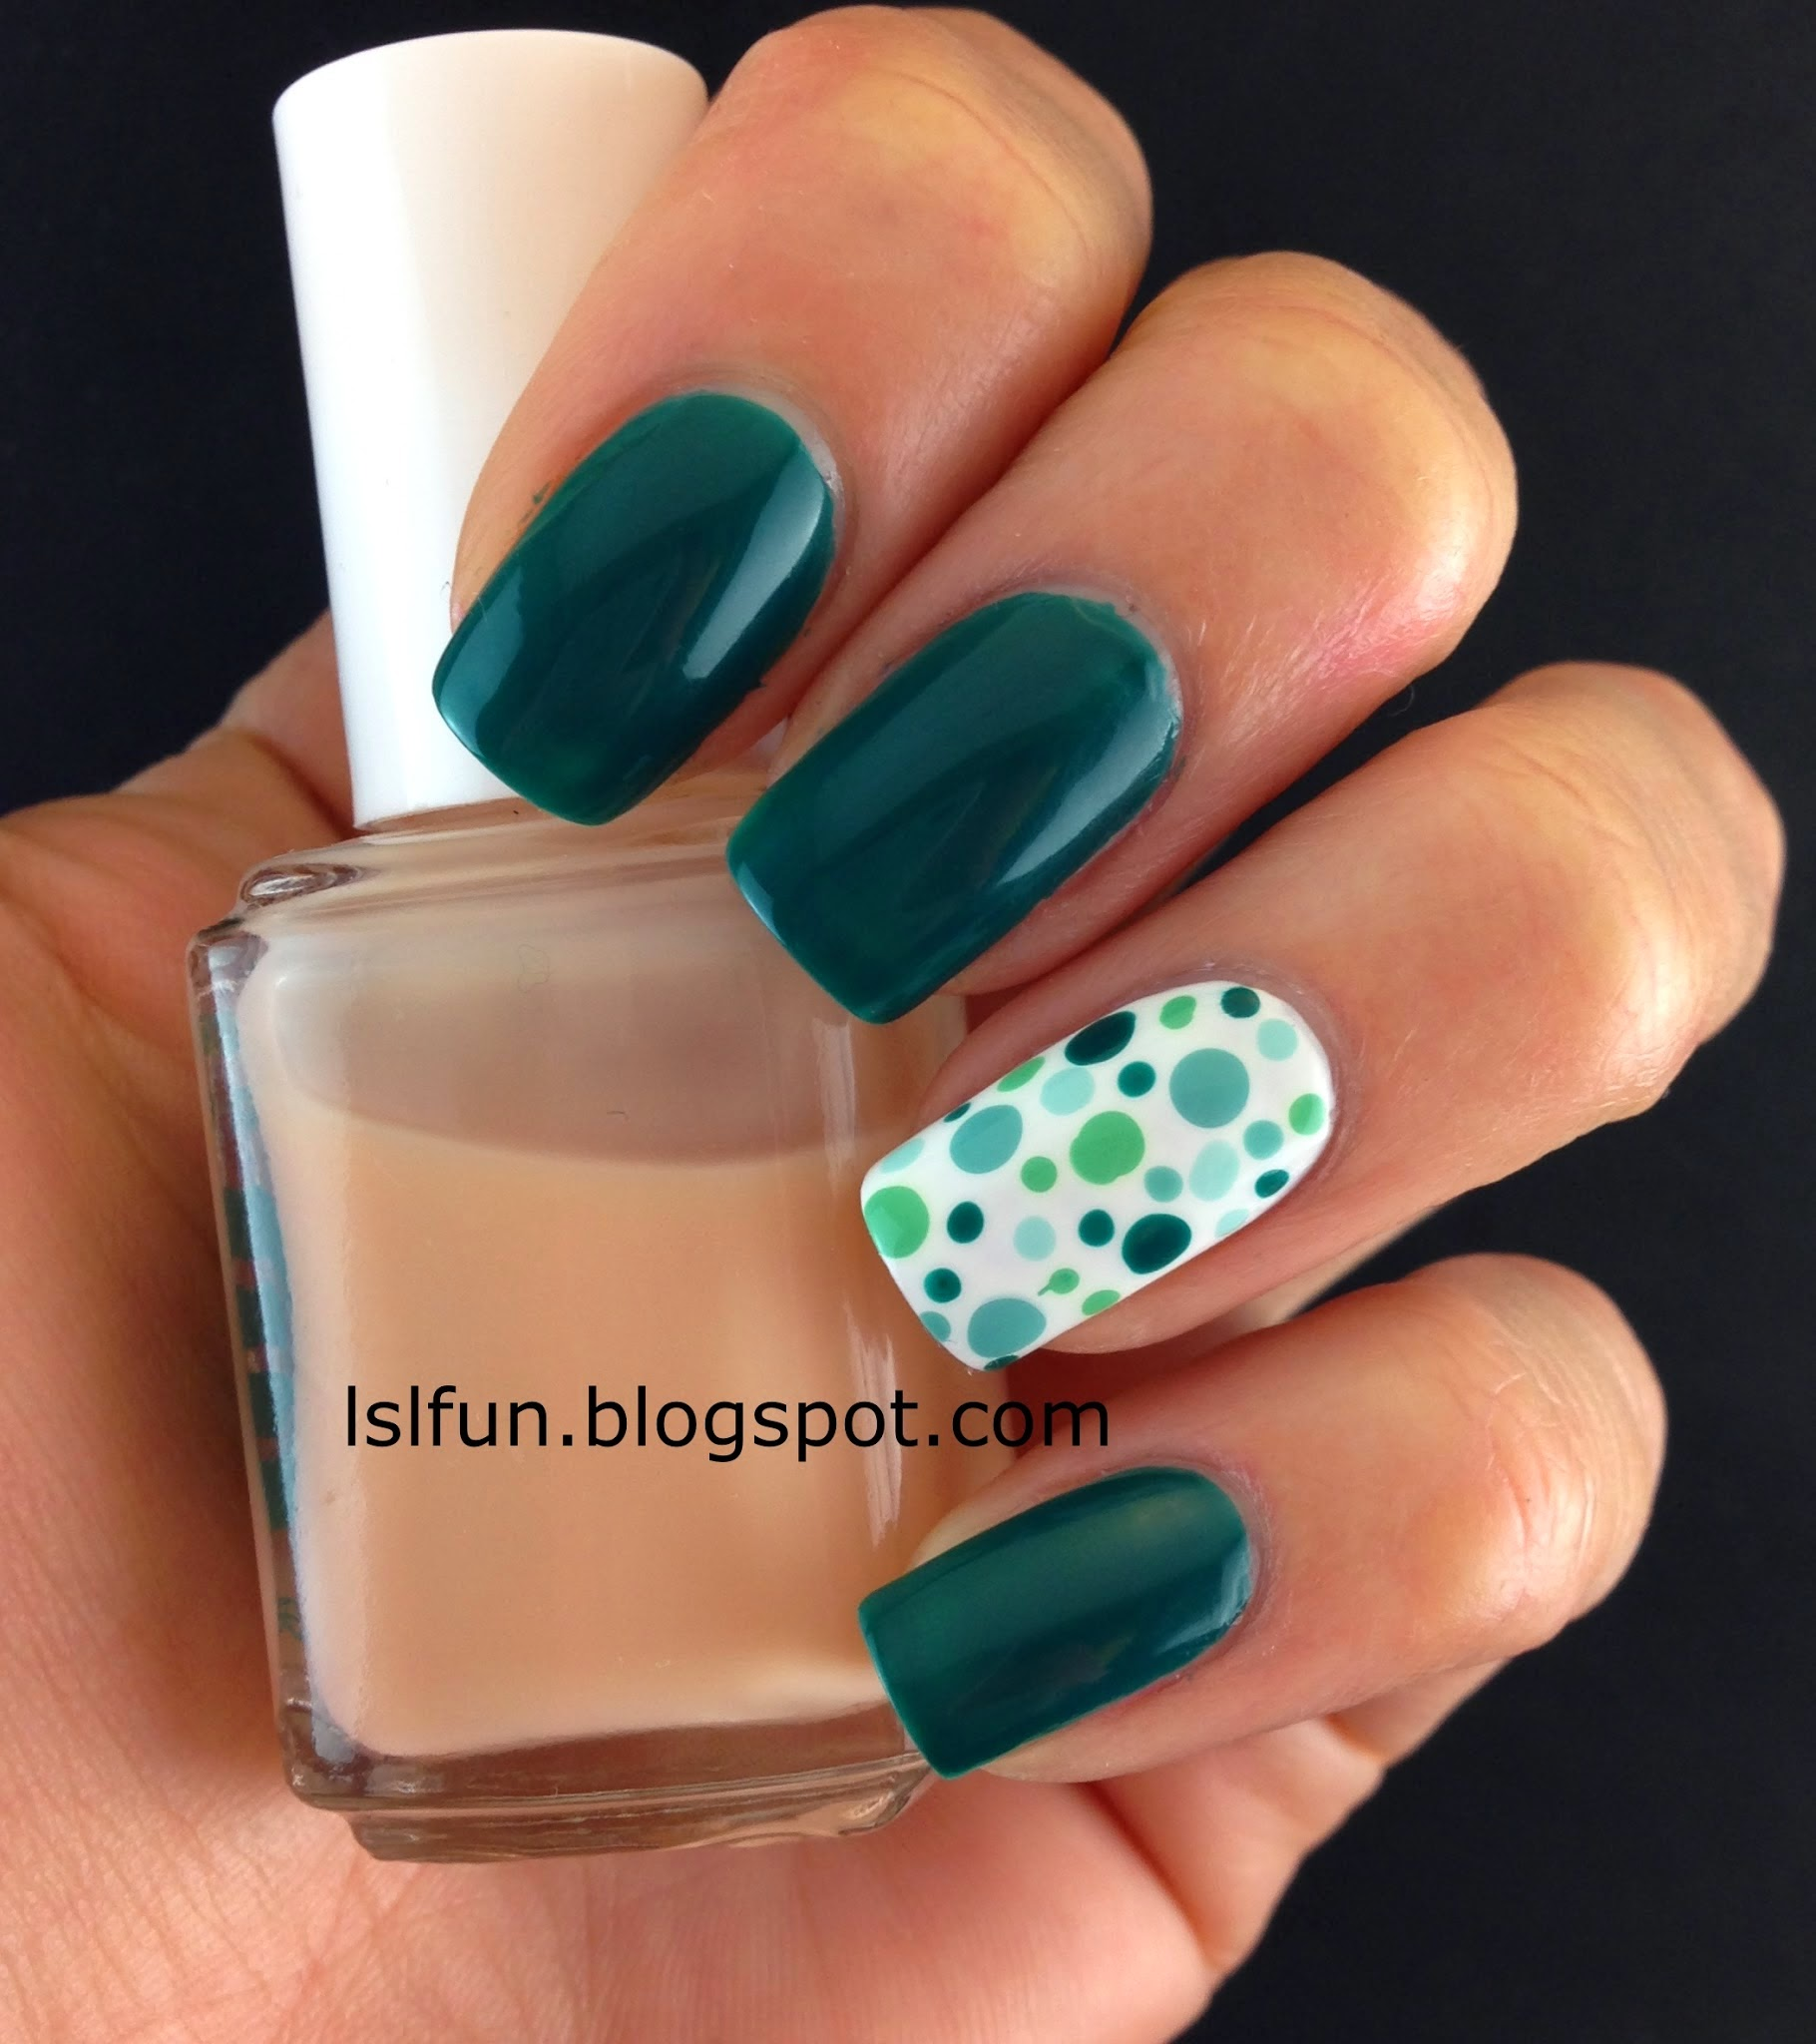 Nail Art For Beginners Without Tools: LSL's FUN BLOG: Nail Art For Beginners : 3 Simple Nail